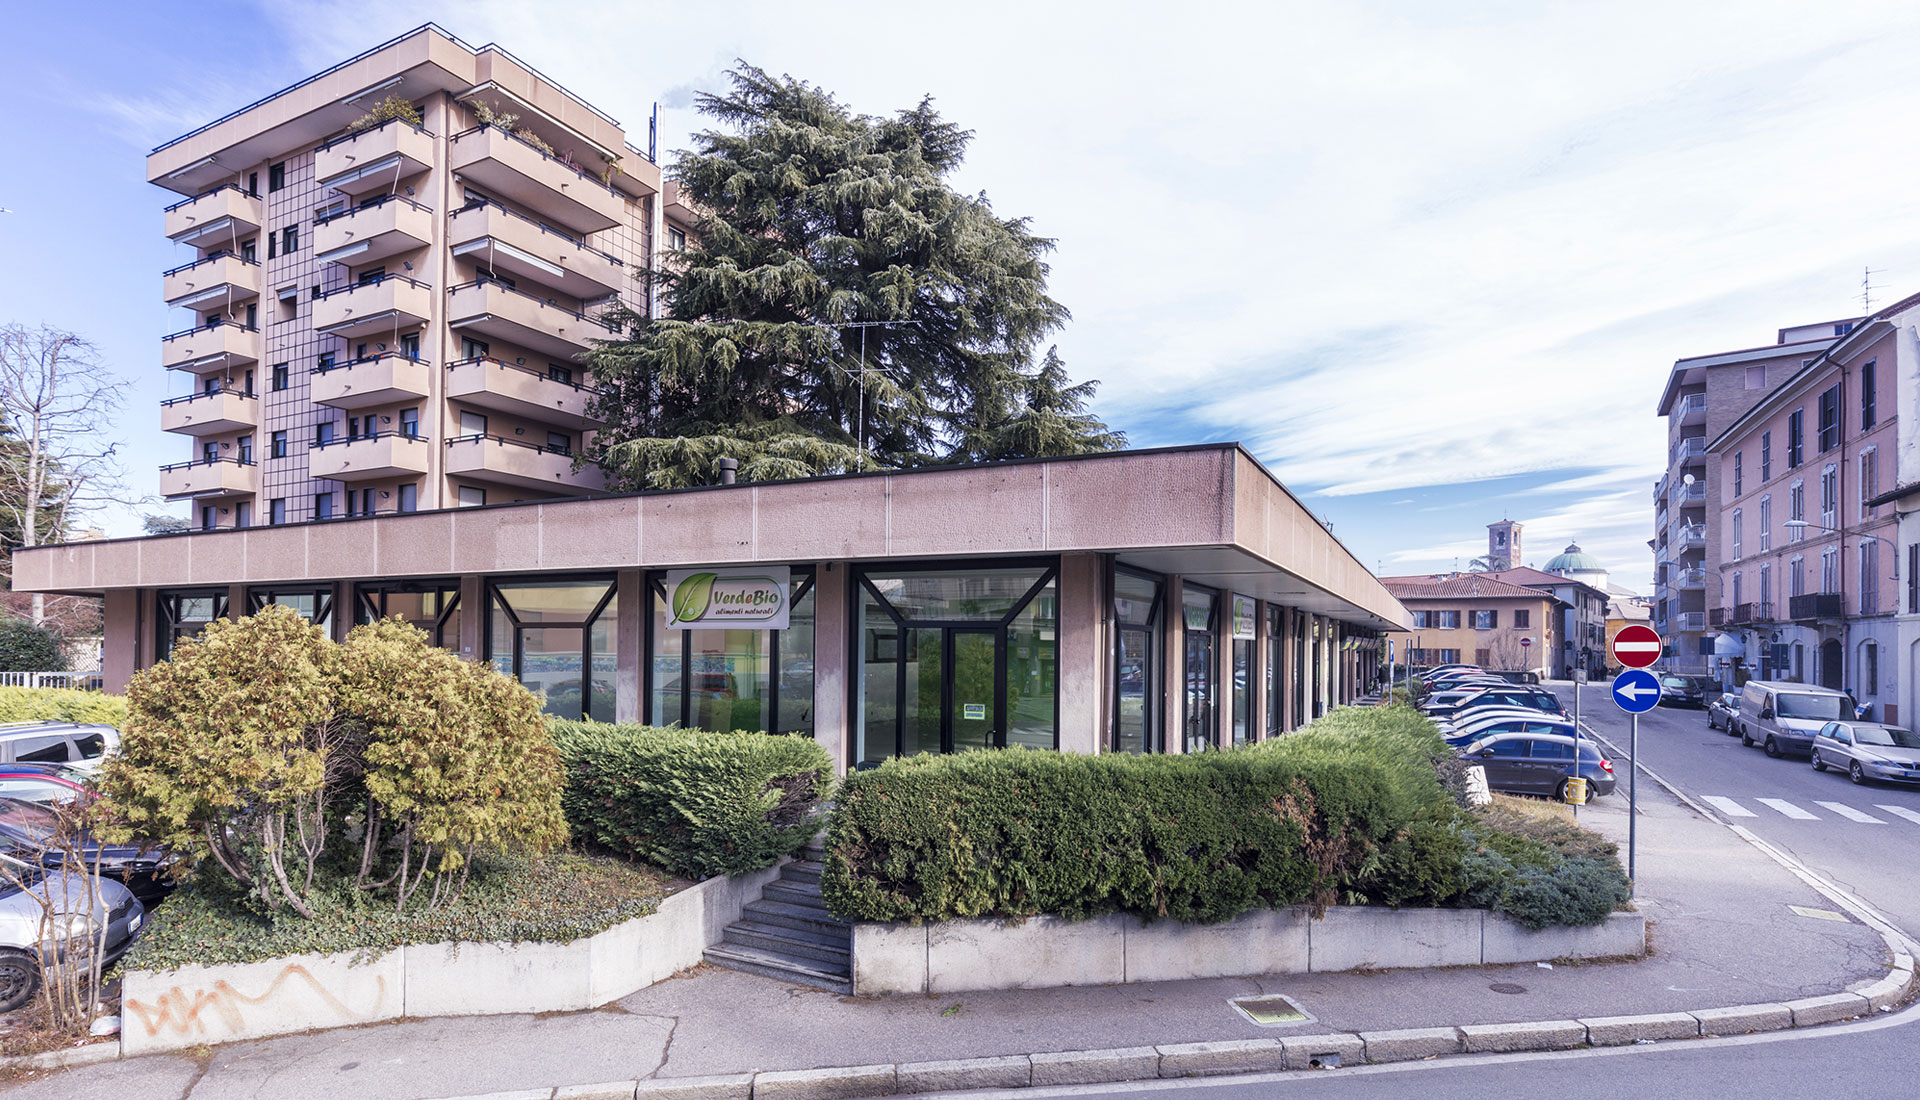 Area Commerciale - Gallarate